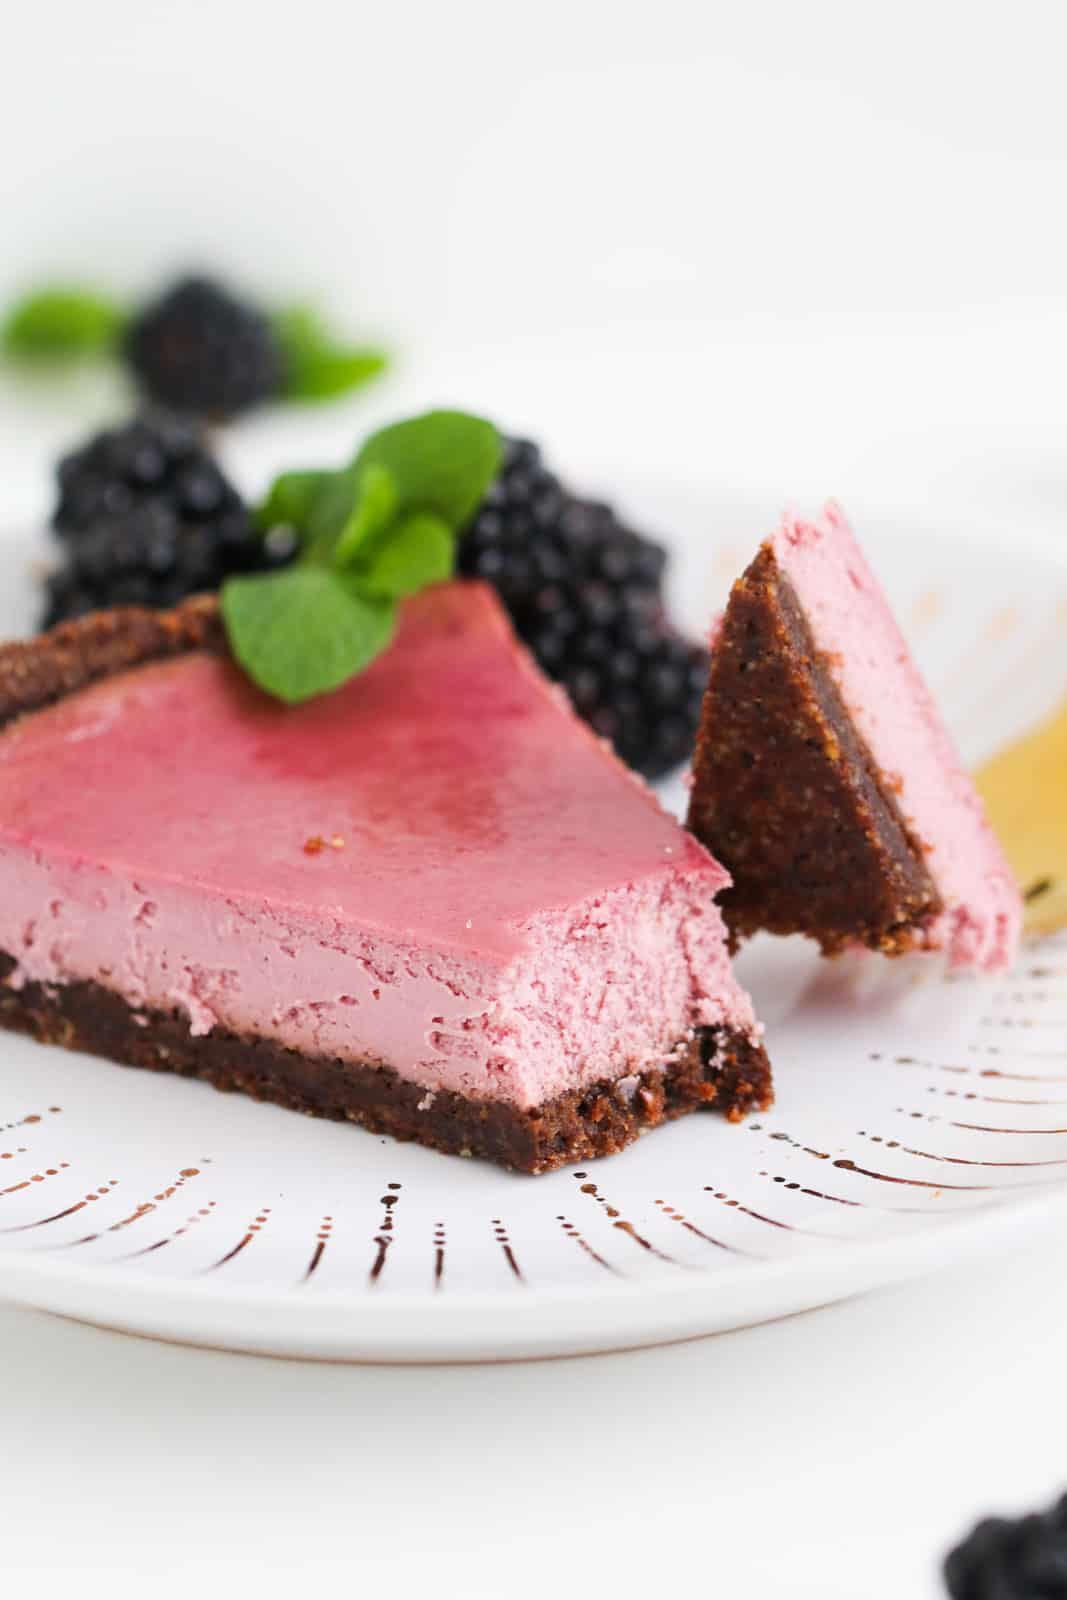 A slice of half-eaten berry cheesecake with fresh blackberries and mint leaves in the background.